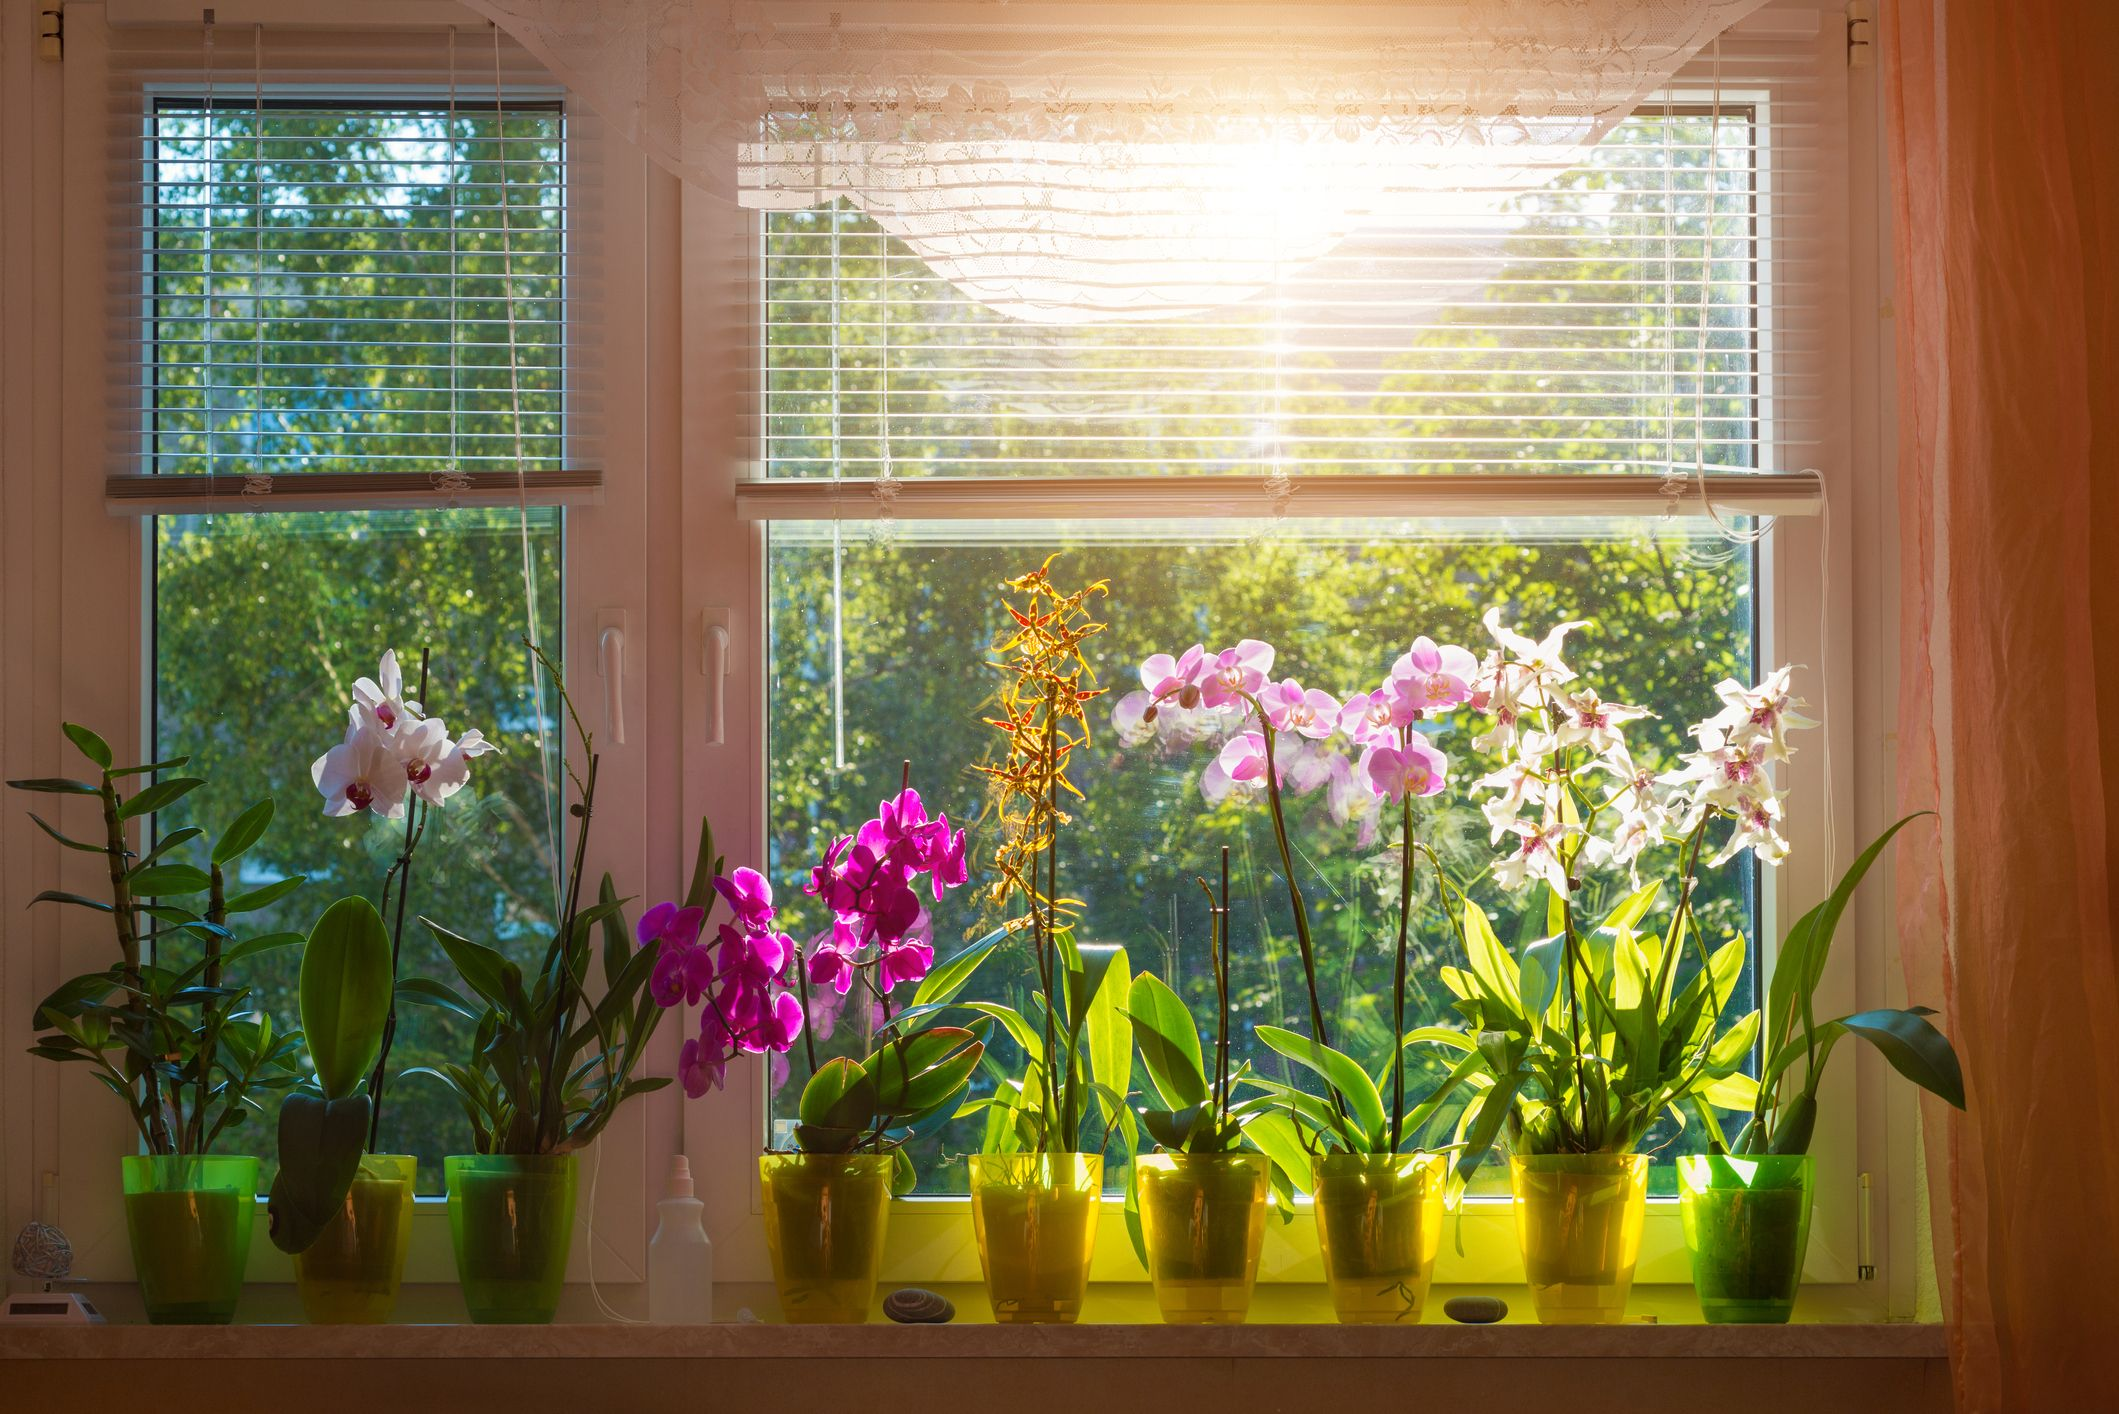 13 Indoor Blooming Plants That Are Easy To Maintain